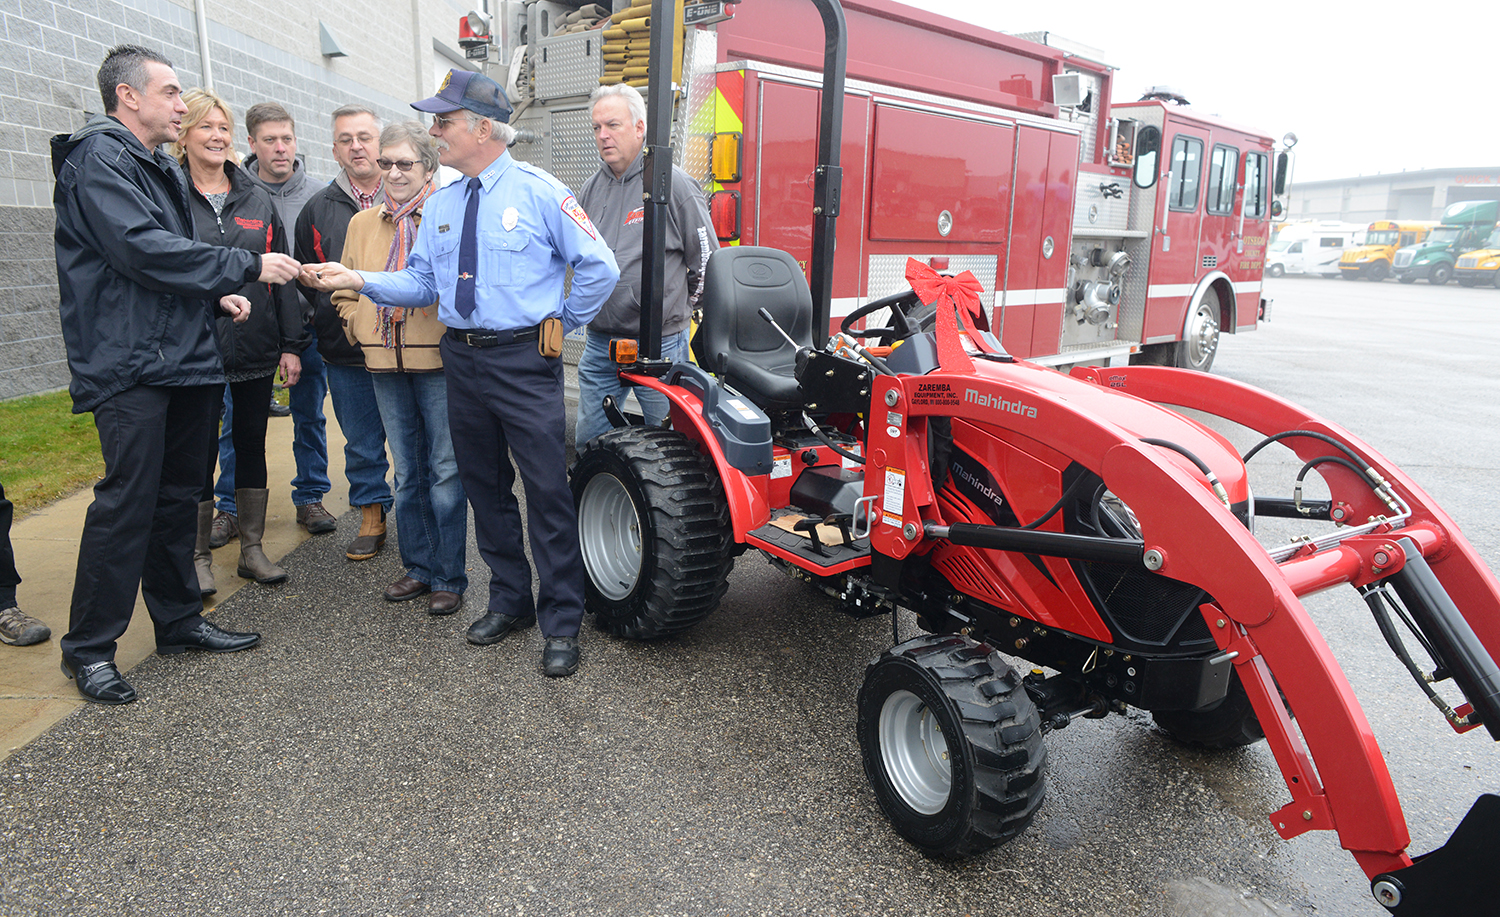 Mahindra Tractor First Responder